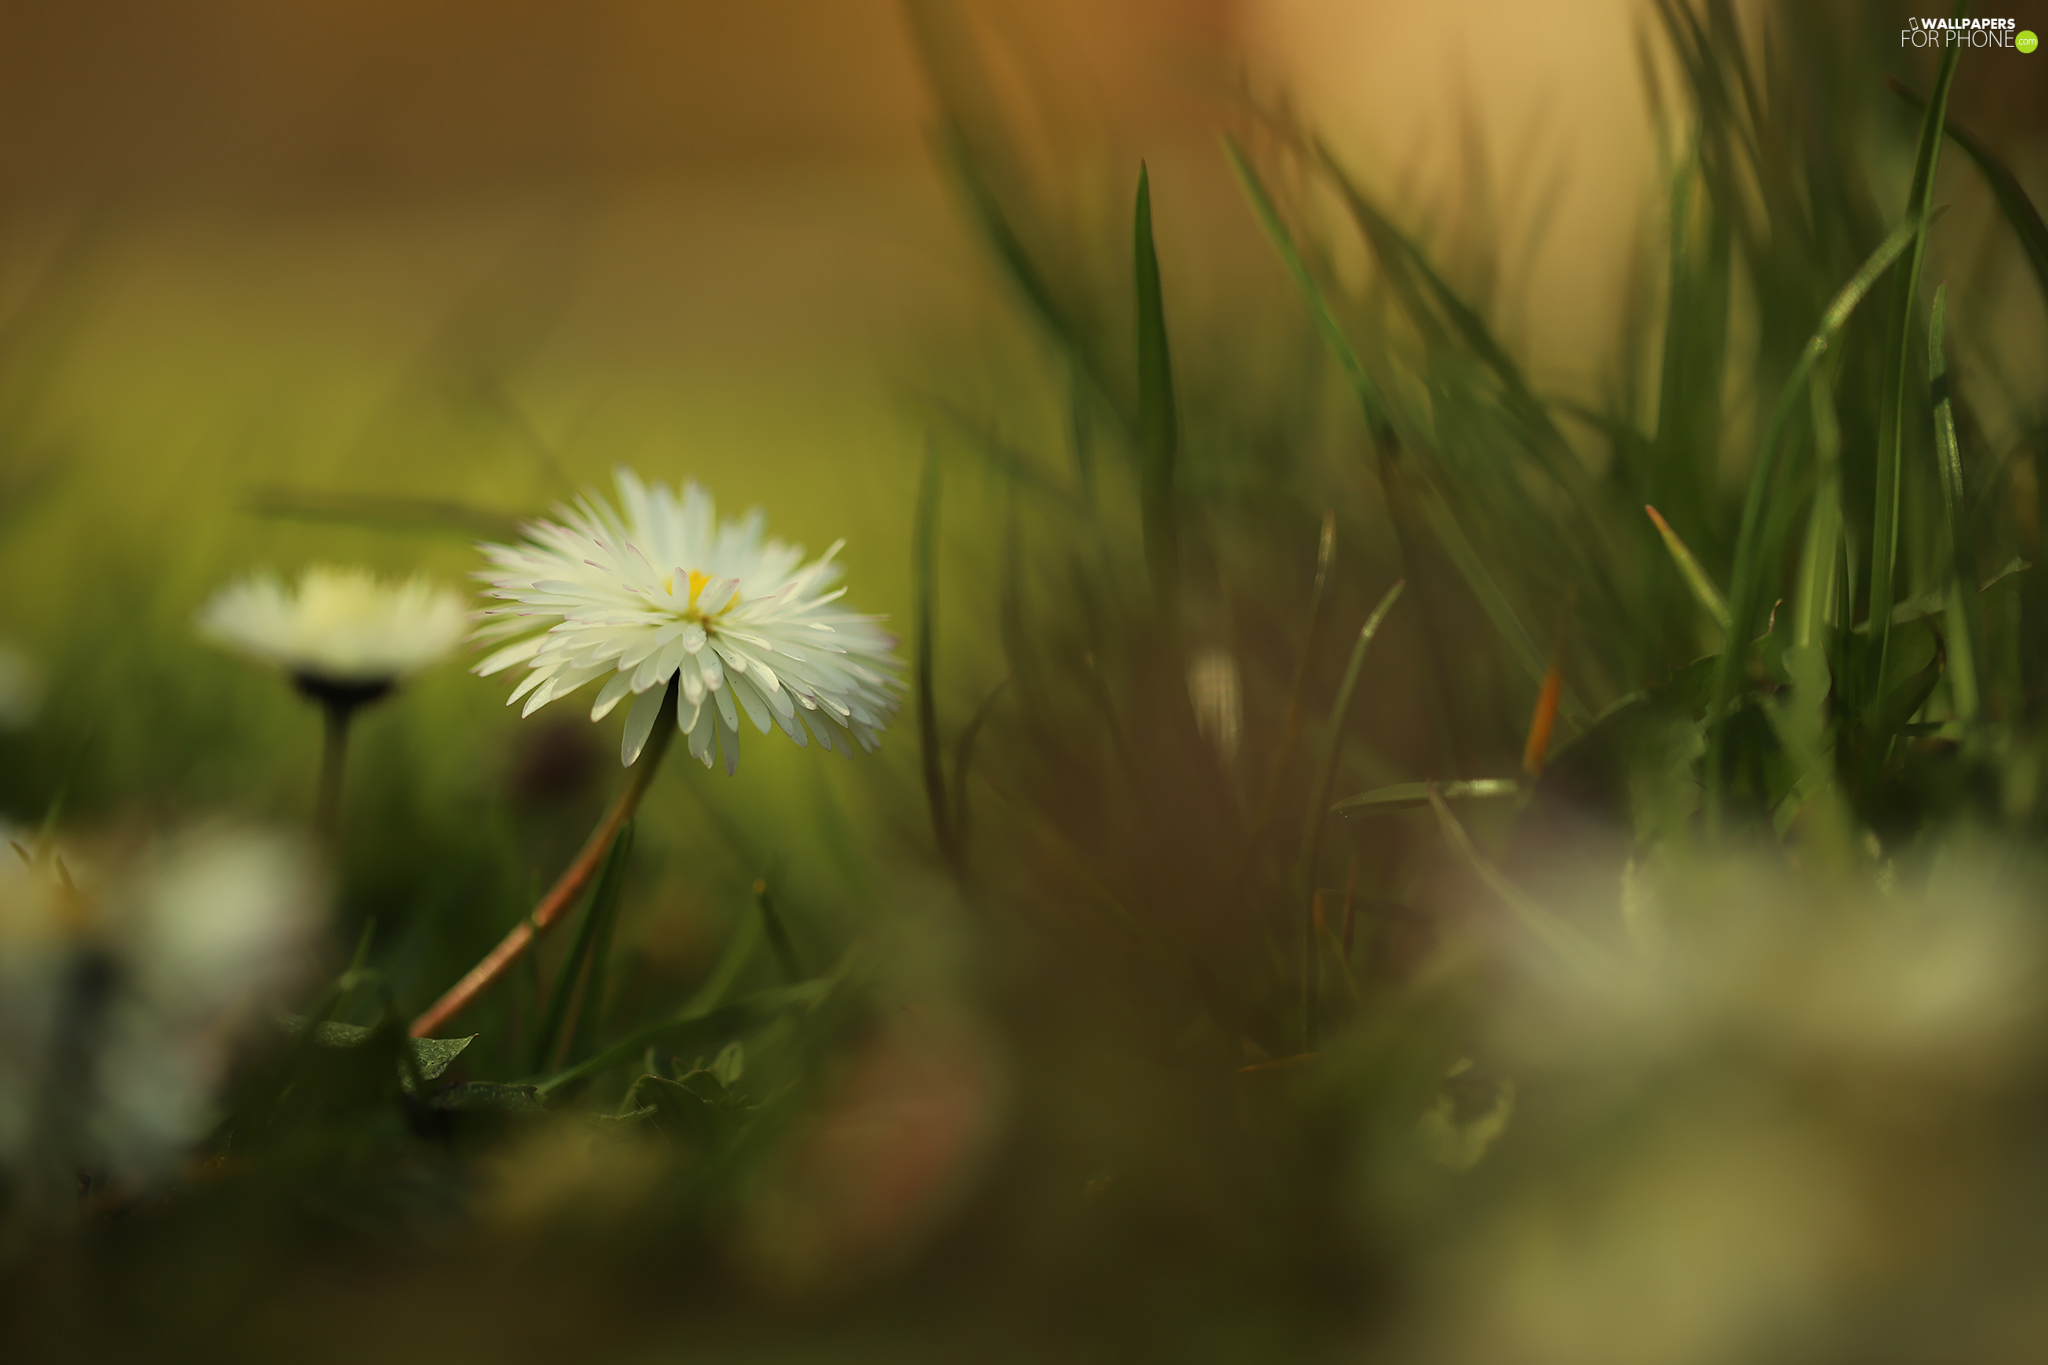 rapprochement, grass, White, Colourfull Flowers, daisy